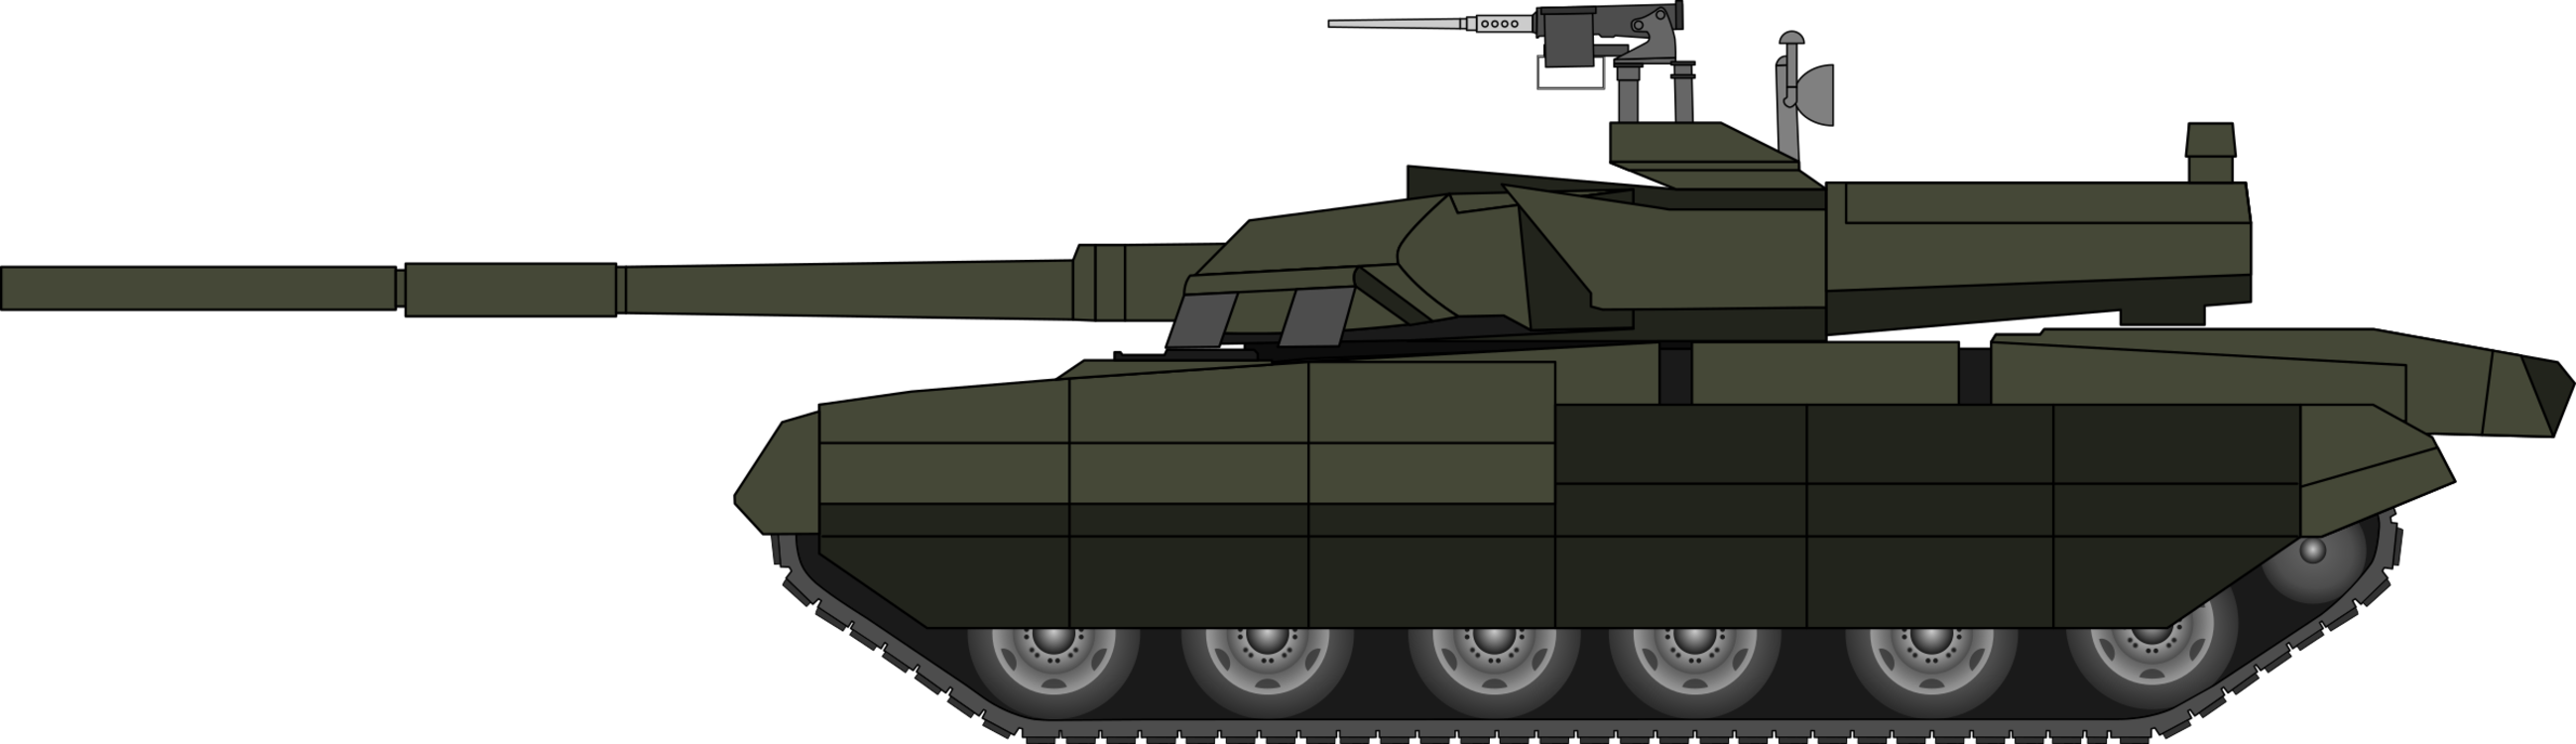 Vector tanks military icon. Main battle tank m